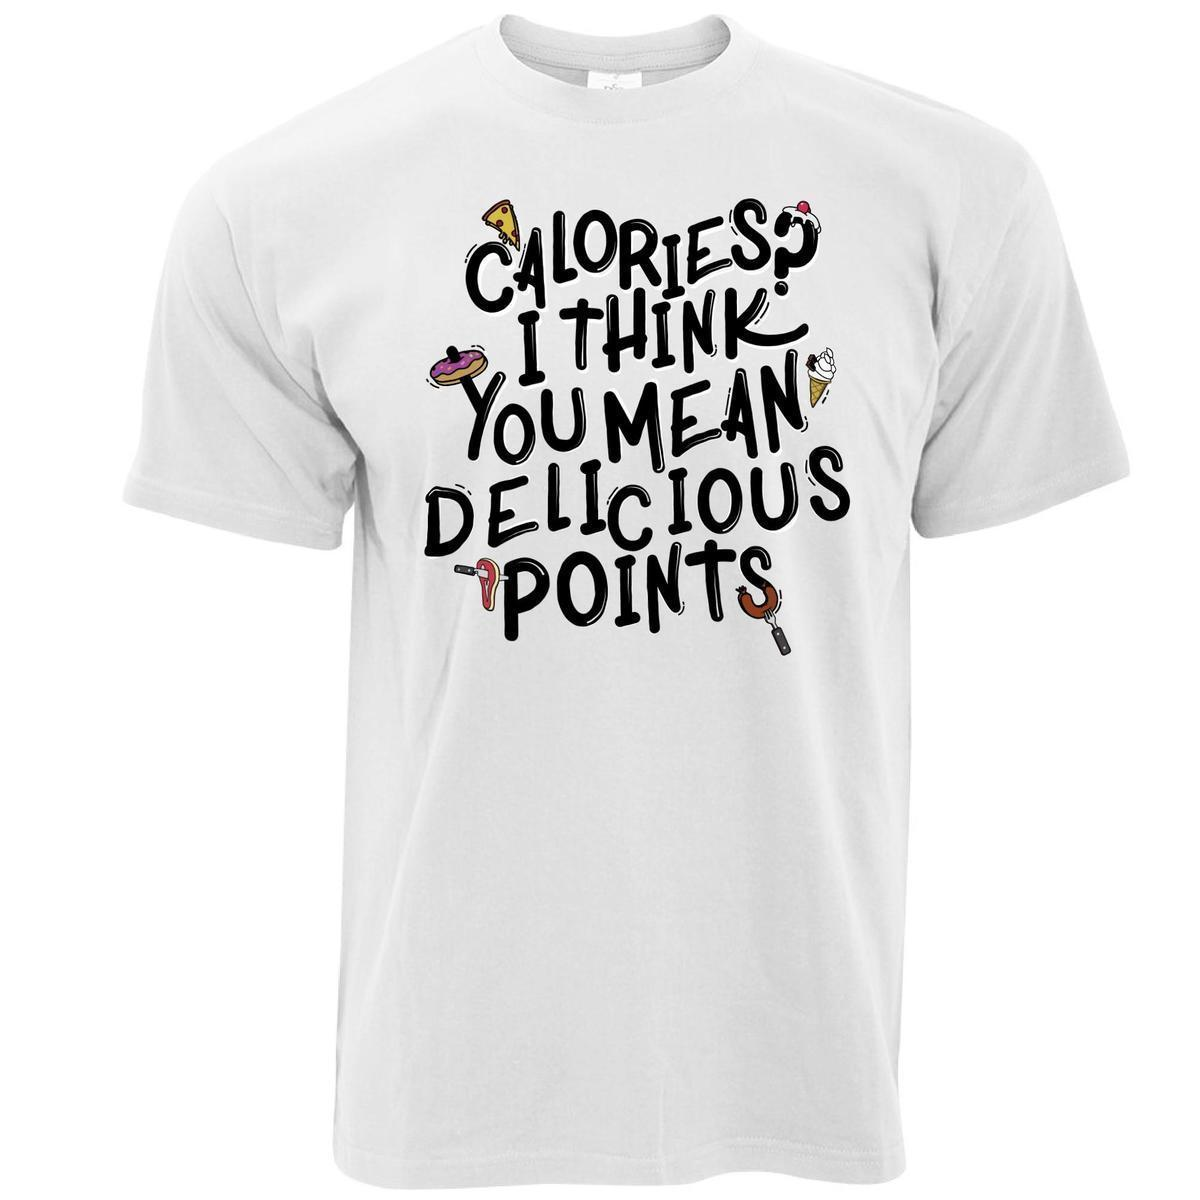 49661092 I Think You Mean Delicious Points Printed Slogan Quote Mens T Shirt Funny T  Shirts Online Hilarious T Shirts From Lefan10, $14.67| DHgate.Com